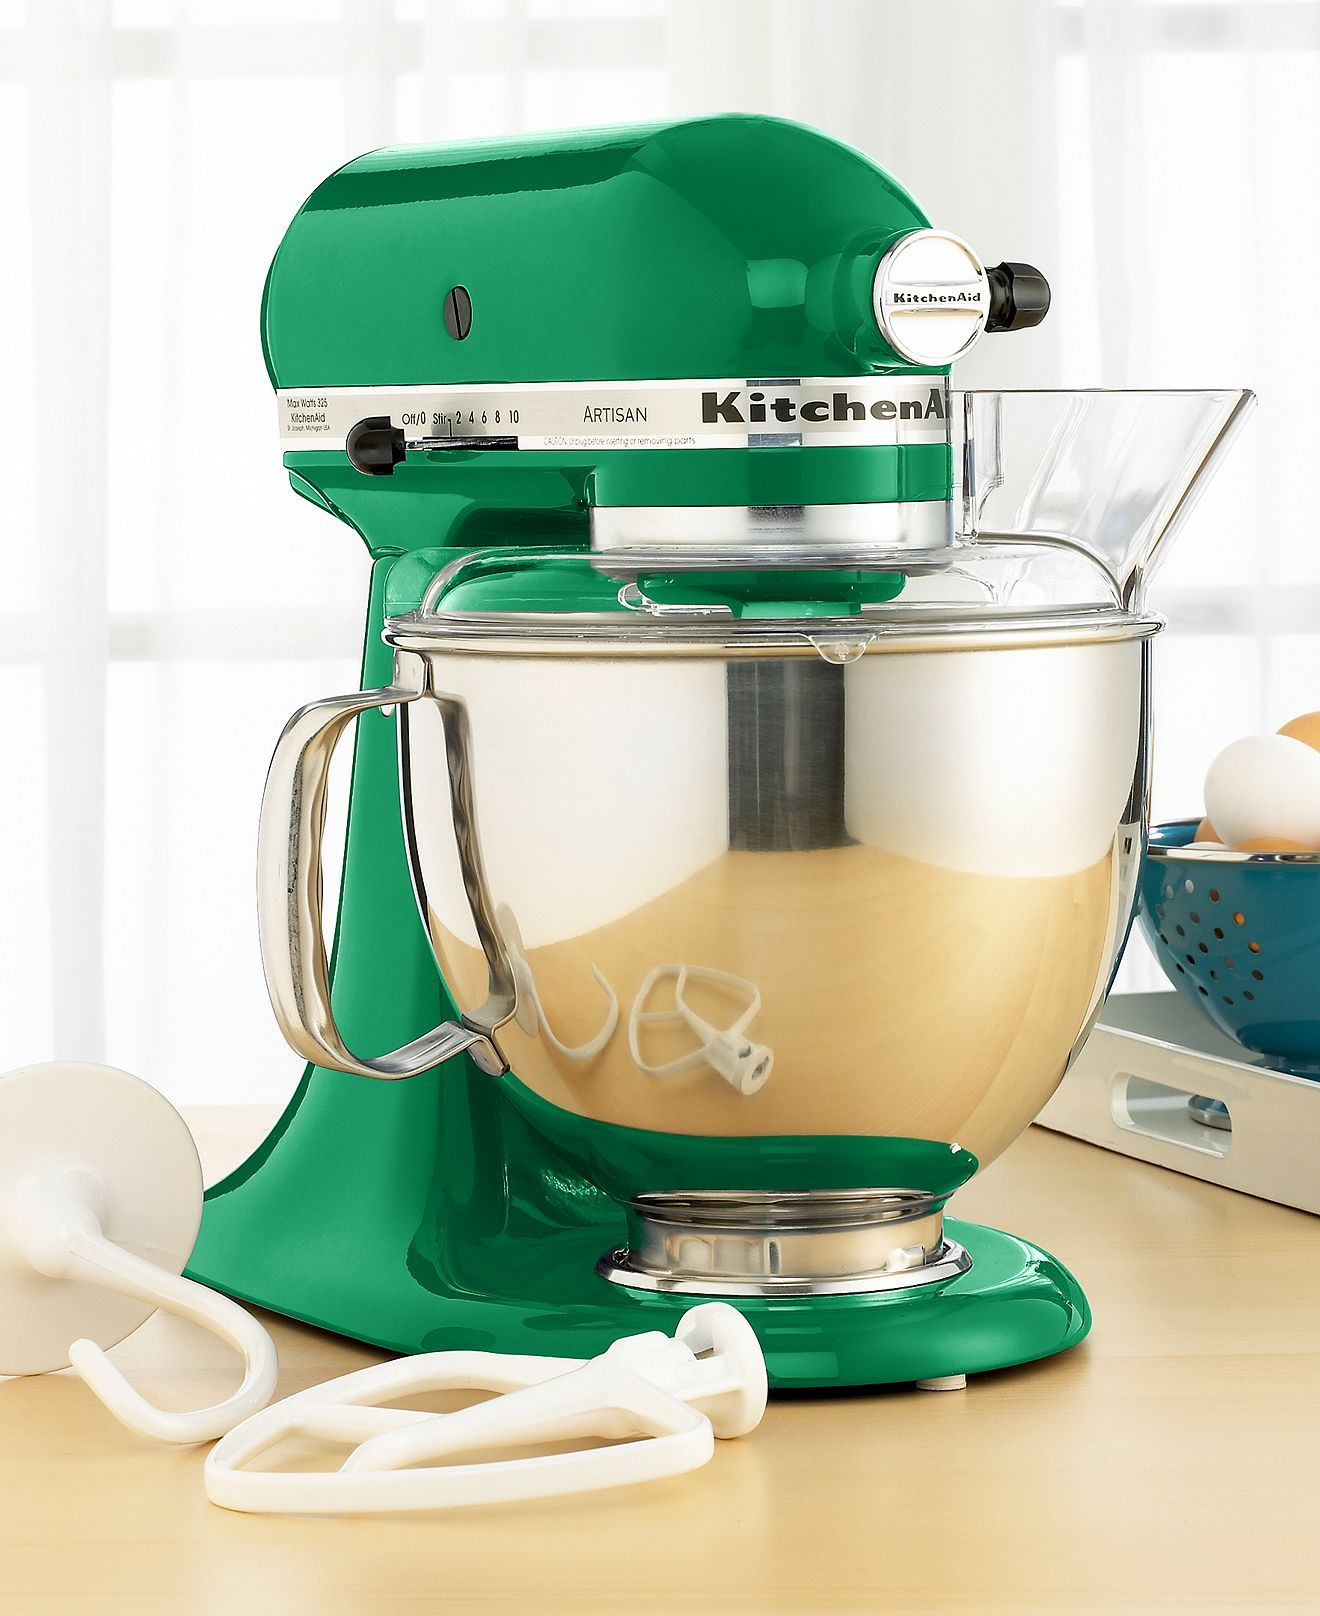 Emerald kitchenaid stand mixer coloroftheyear 2017 gift guide pinterest kitchenaid stand - Kitchenaid mixer bayleaf ...